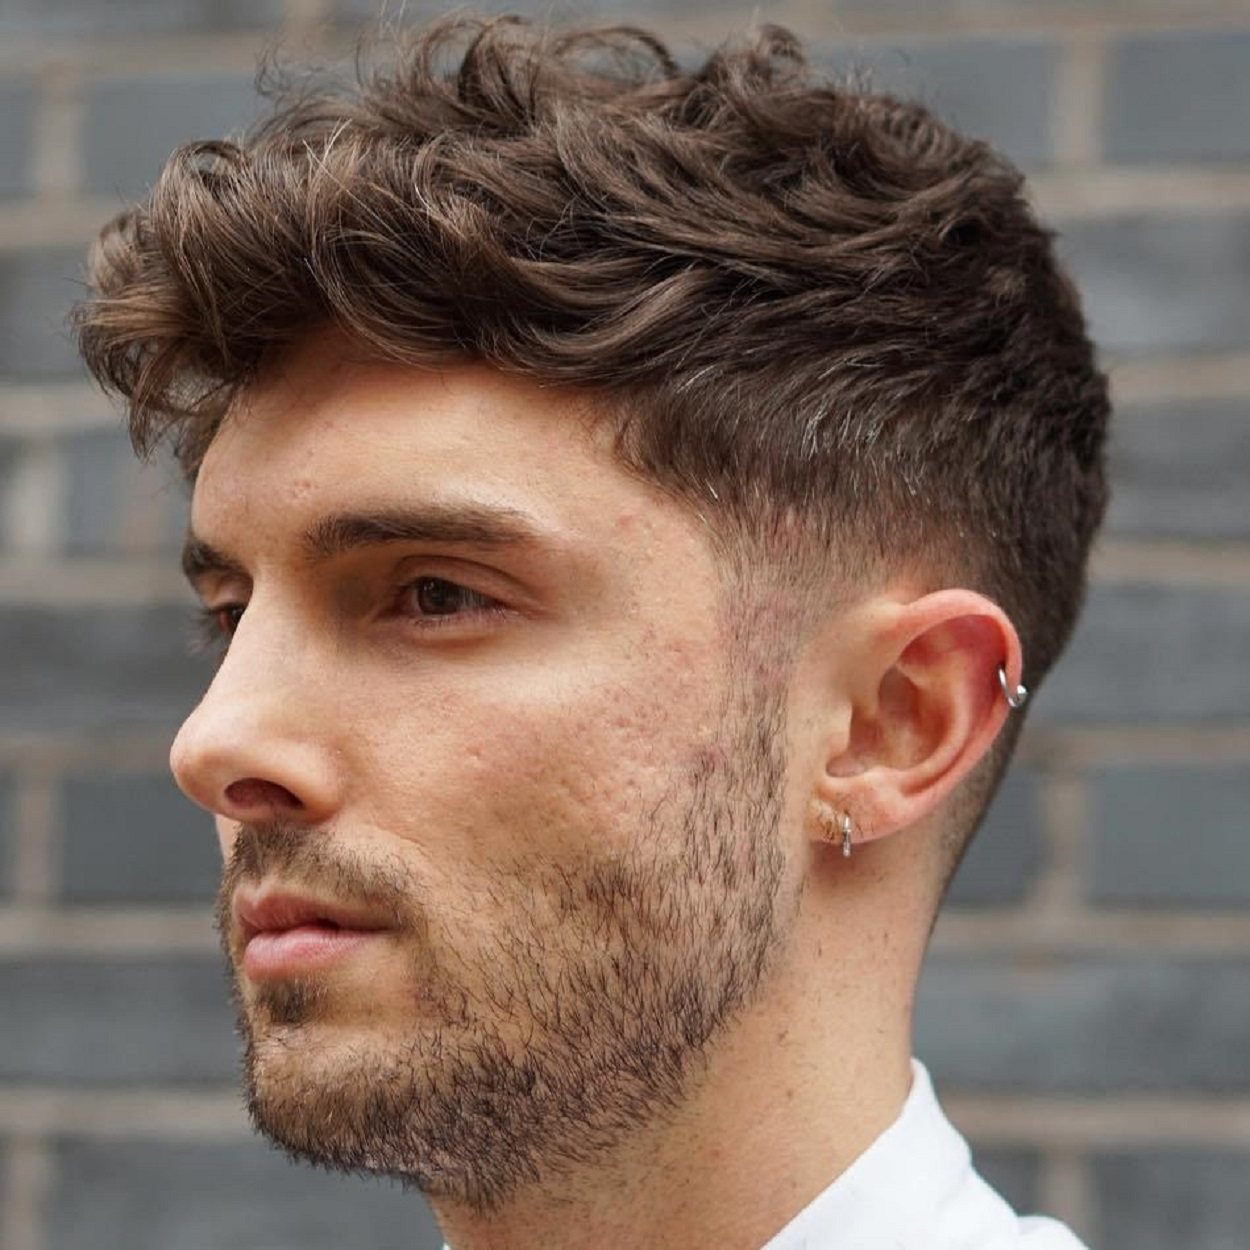 Curly thick hairstyles for men photo images